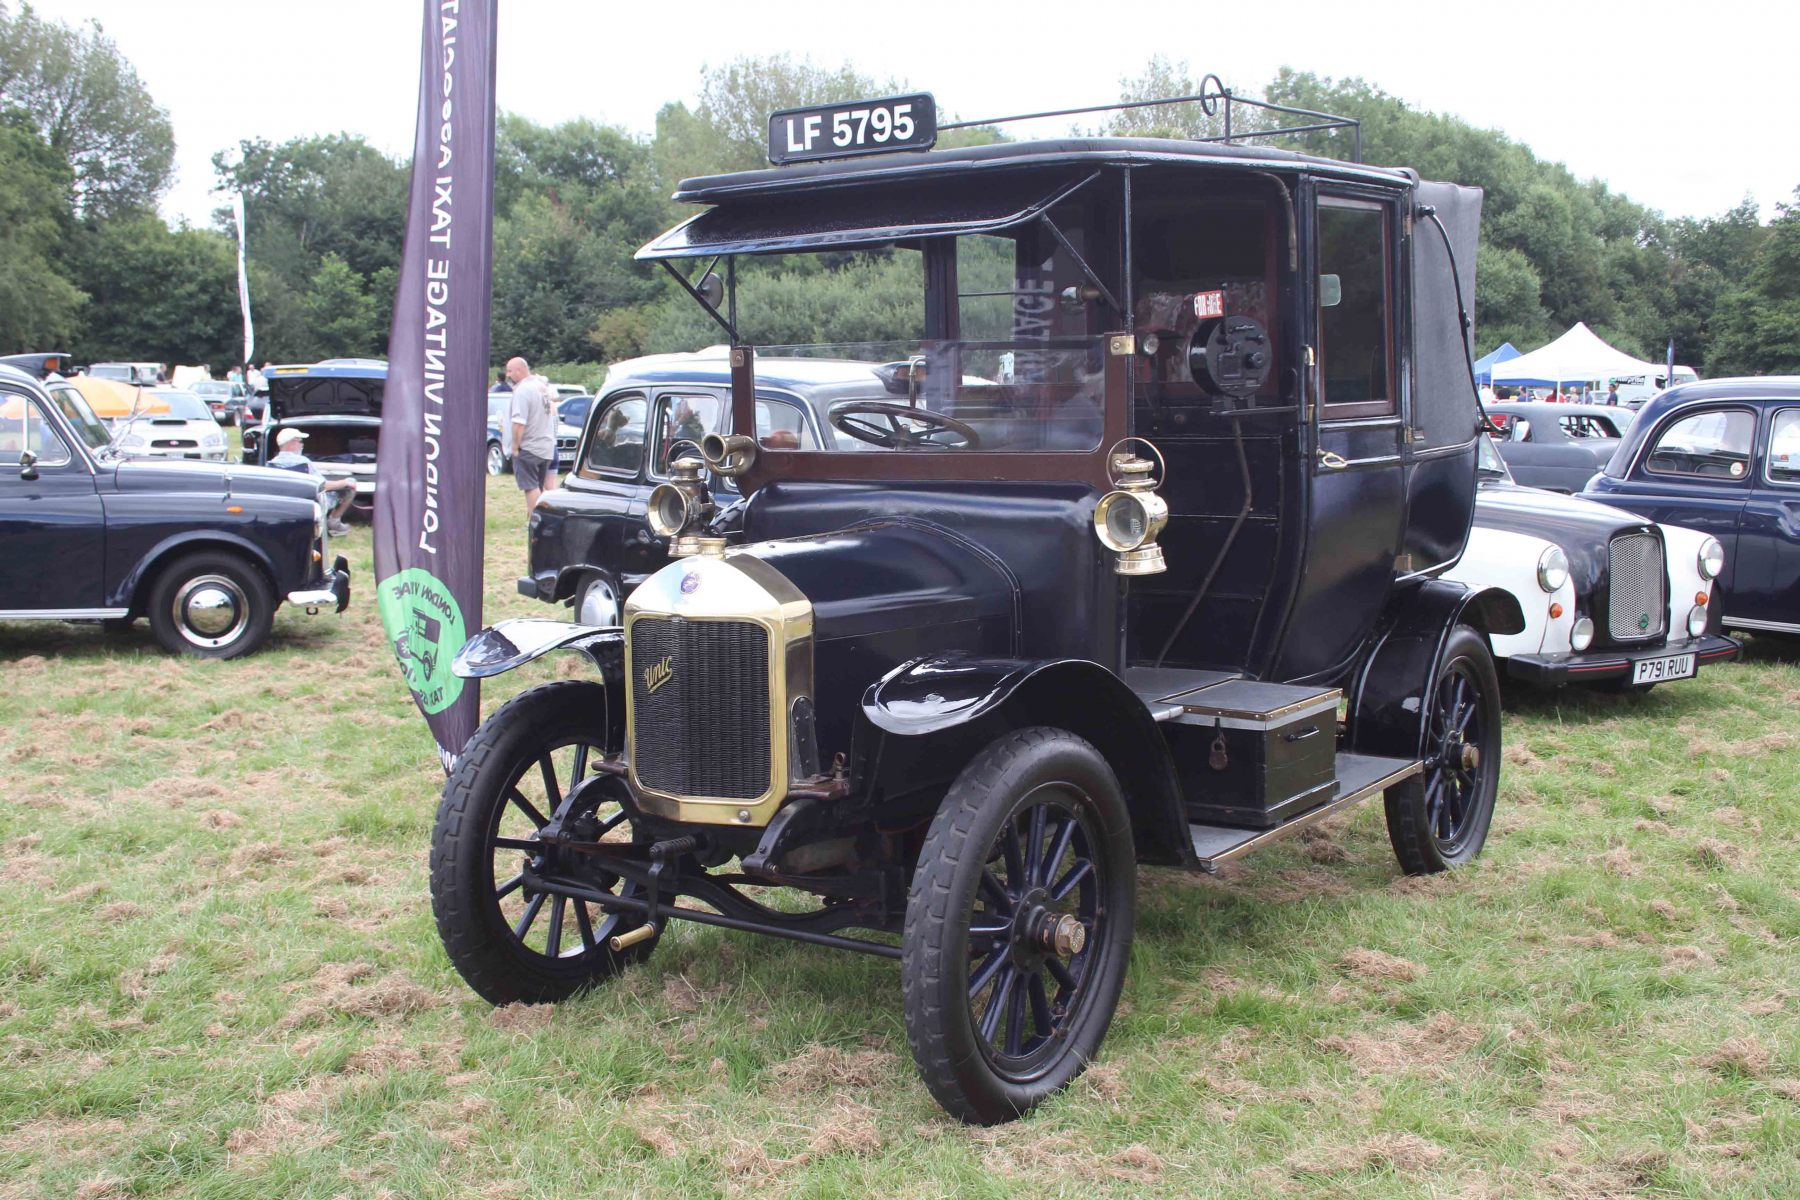 Uxbridge Annual Show - this Unic 12-16 is the oldest London taxi in regular use